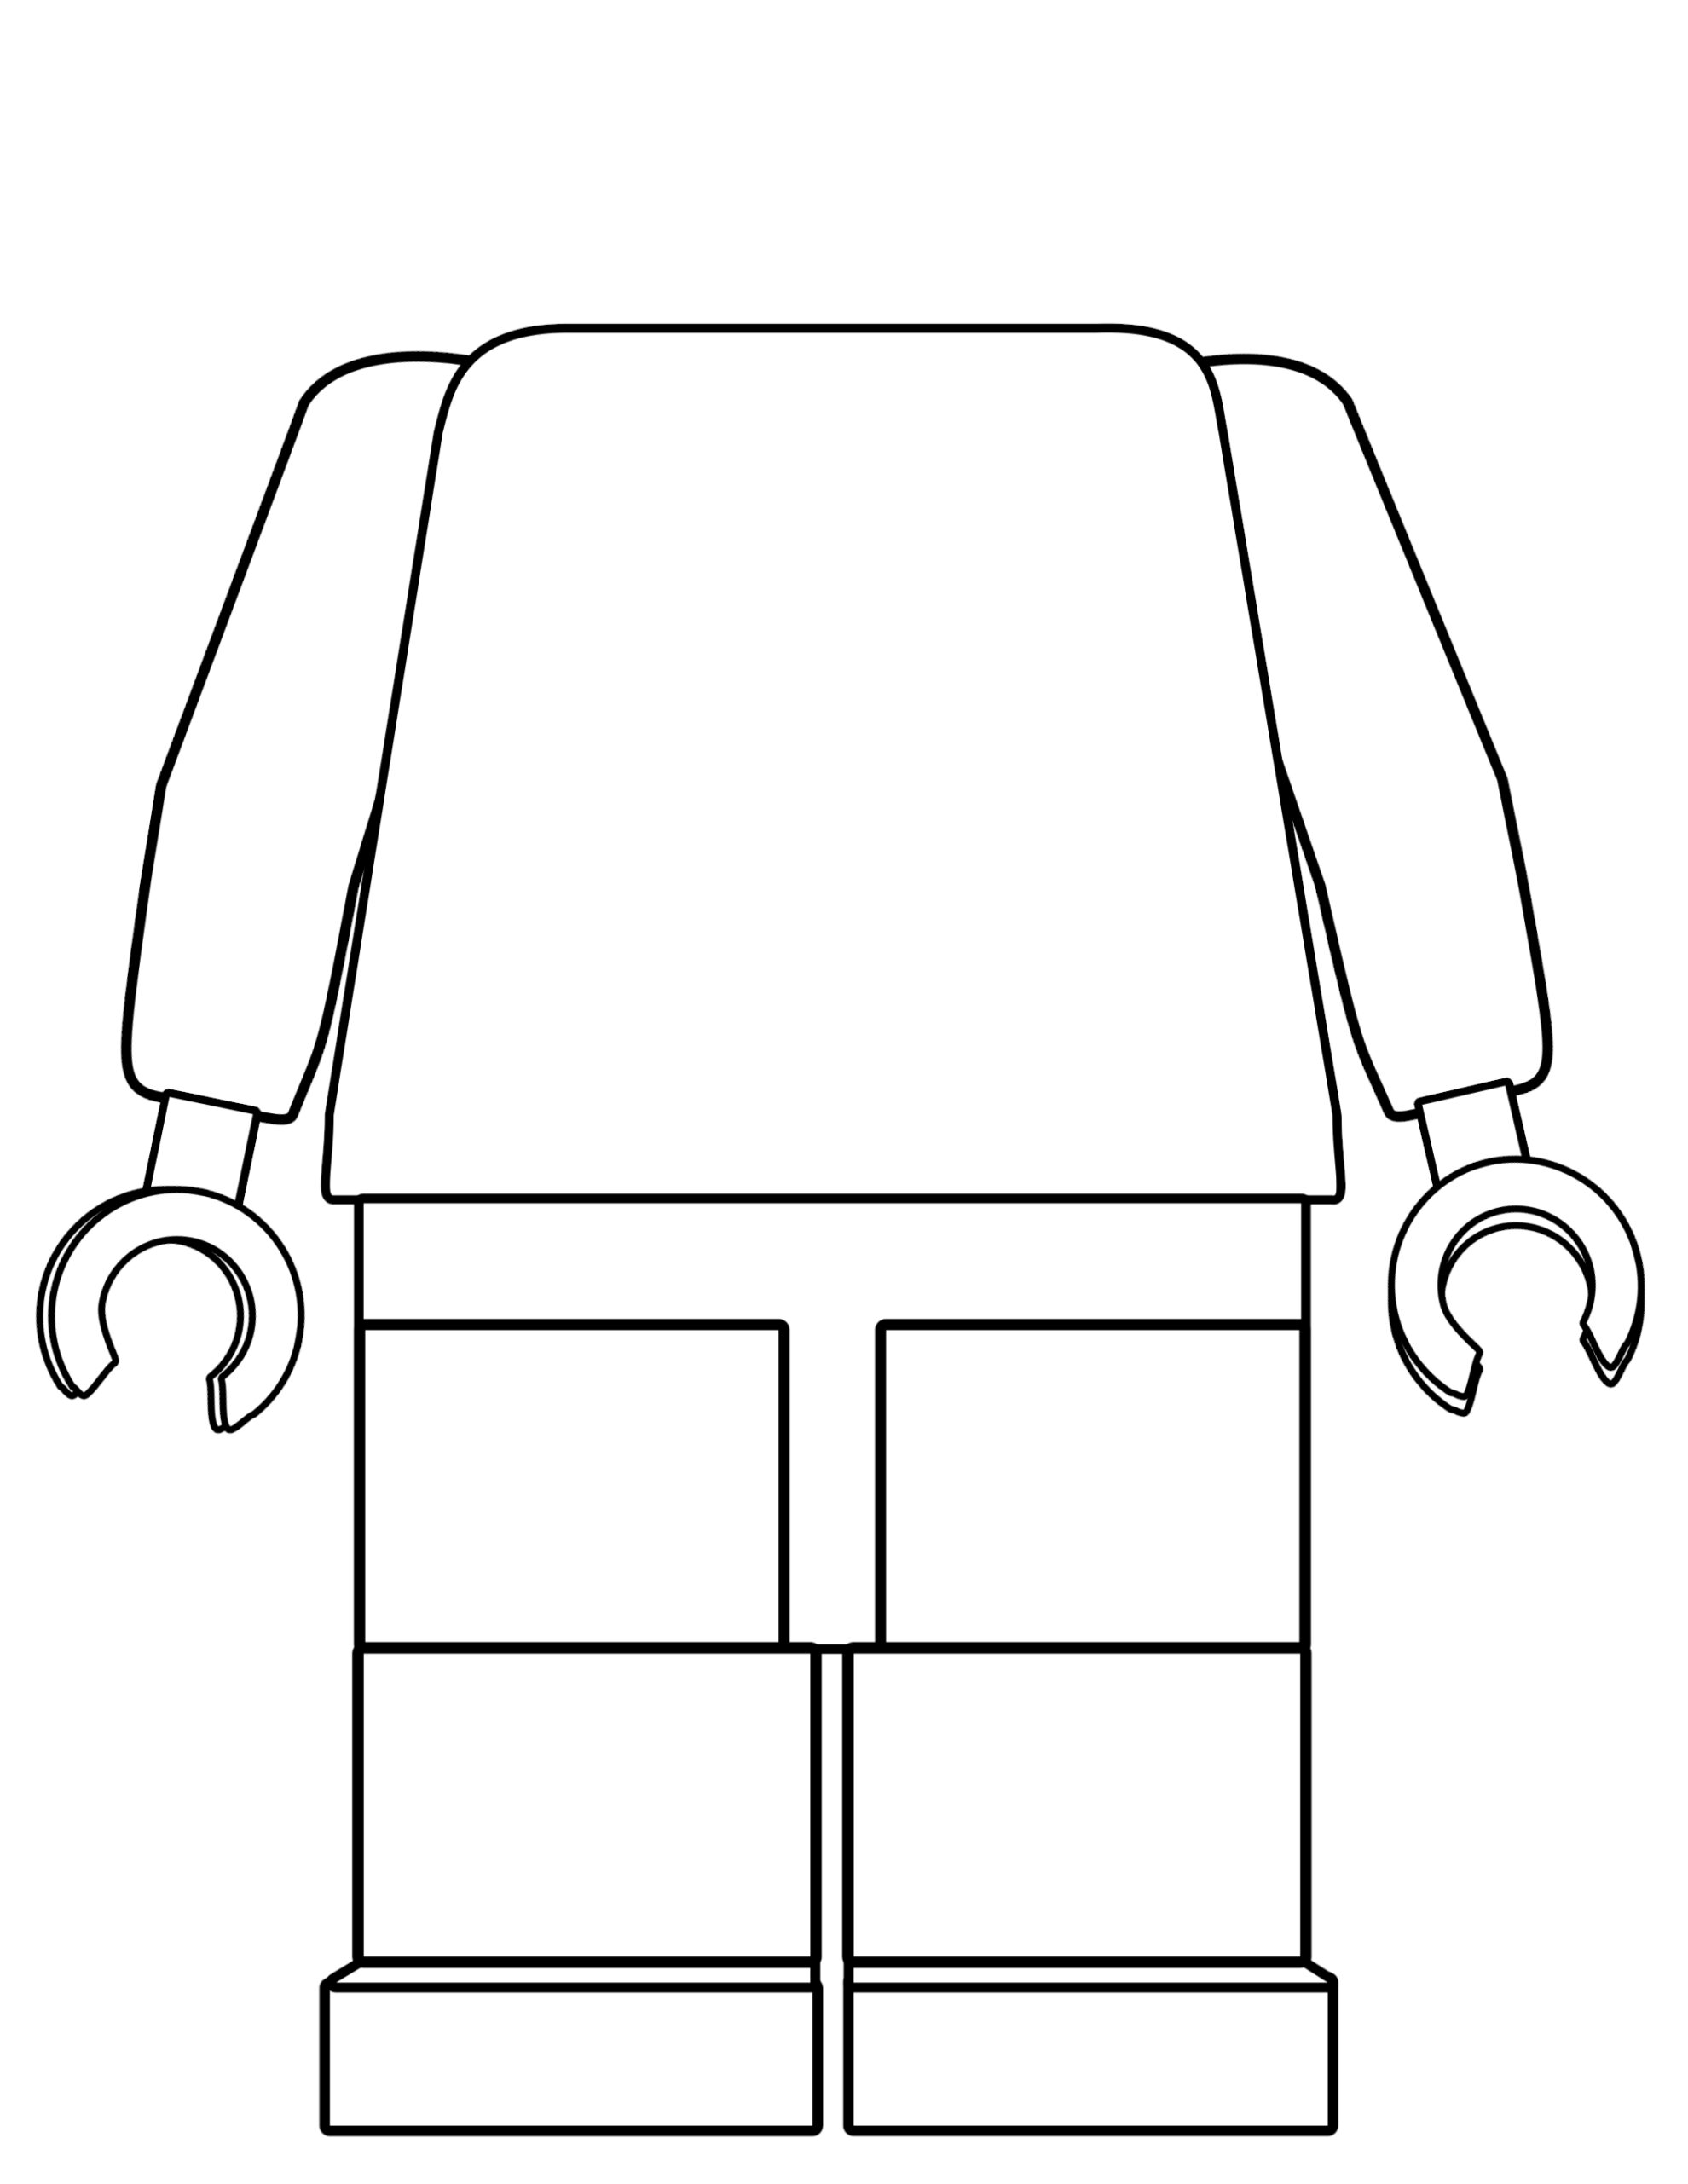 graphic regarding Lego Head Printable identified as Pin the Brain upon the Lego Person Bash Recreation Free of charge Printable